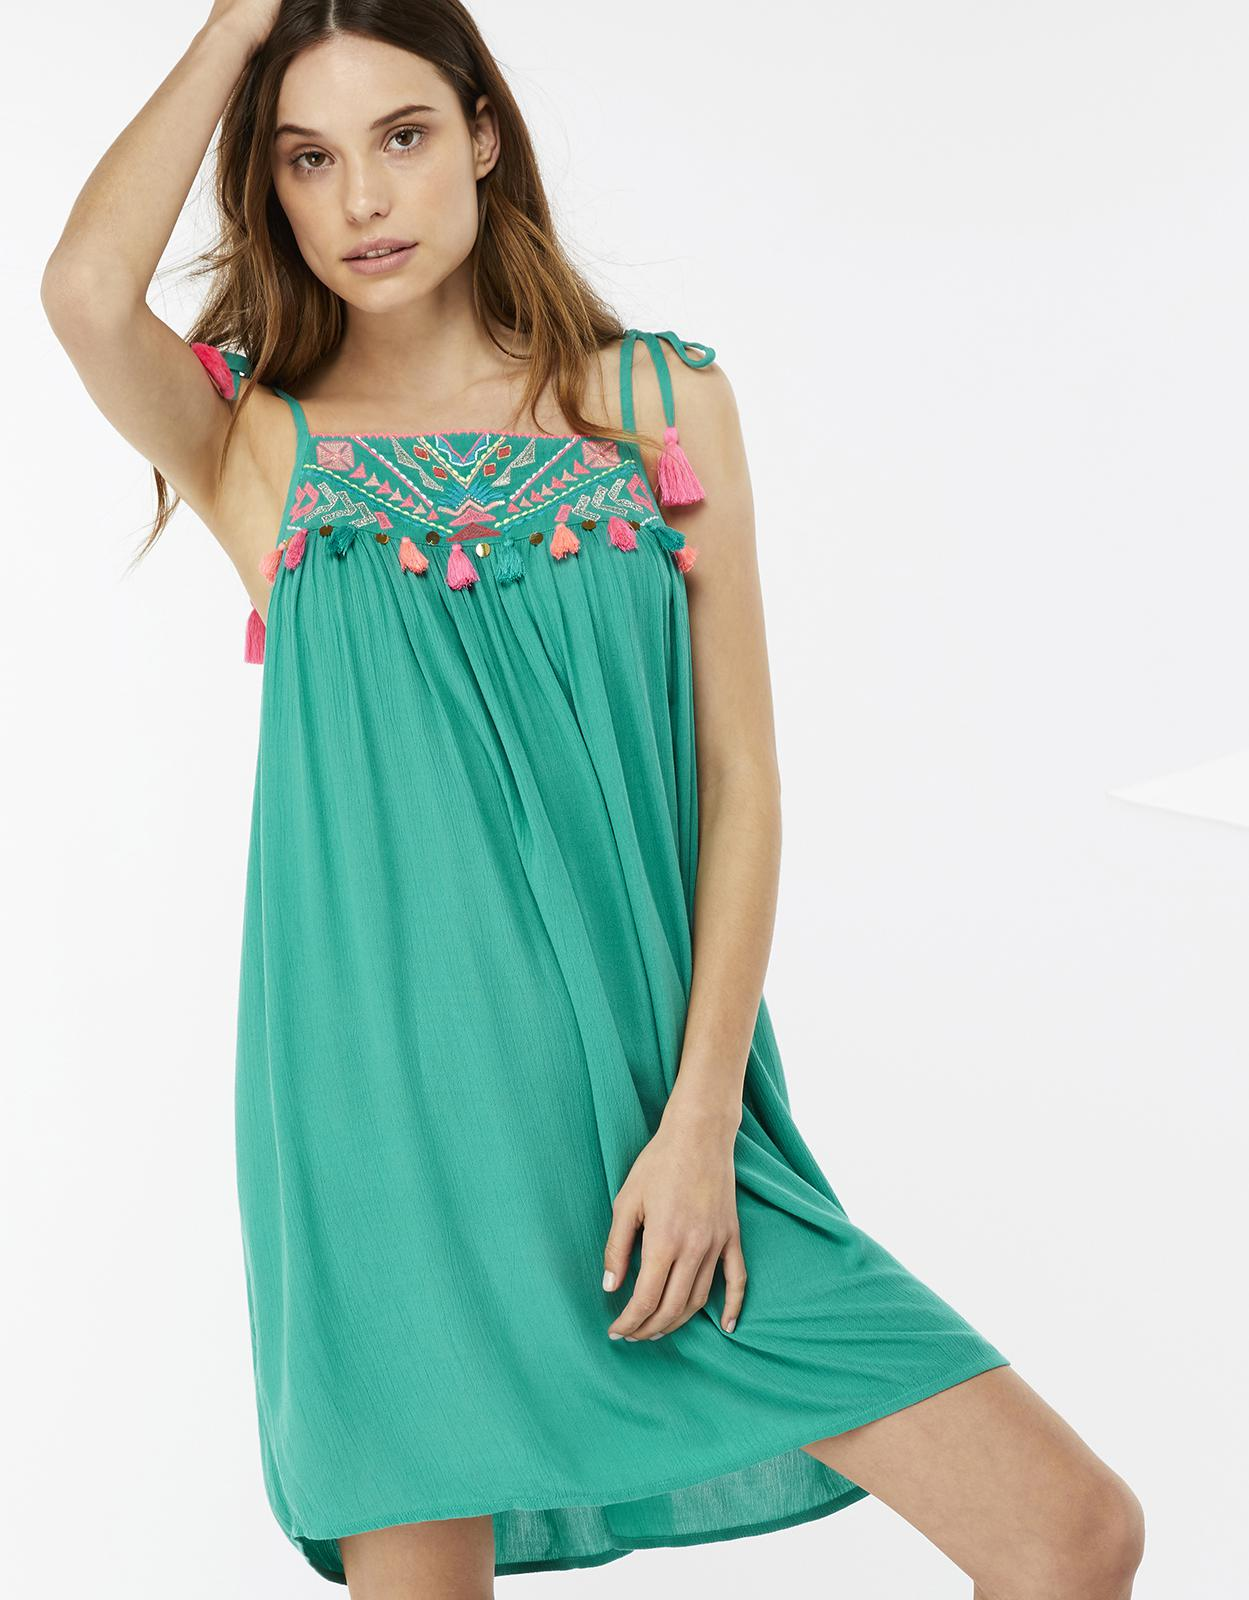 Accessorize Aztec Embroidered Dress Shopping Online Cheap Price Sale Discount Pay With Paypal r7AlYepU